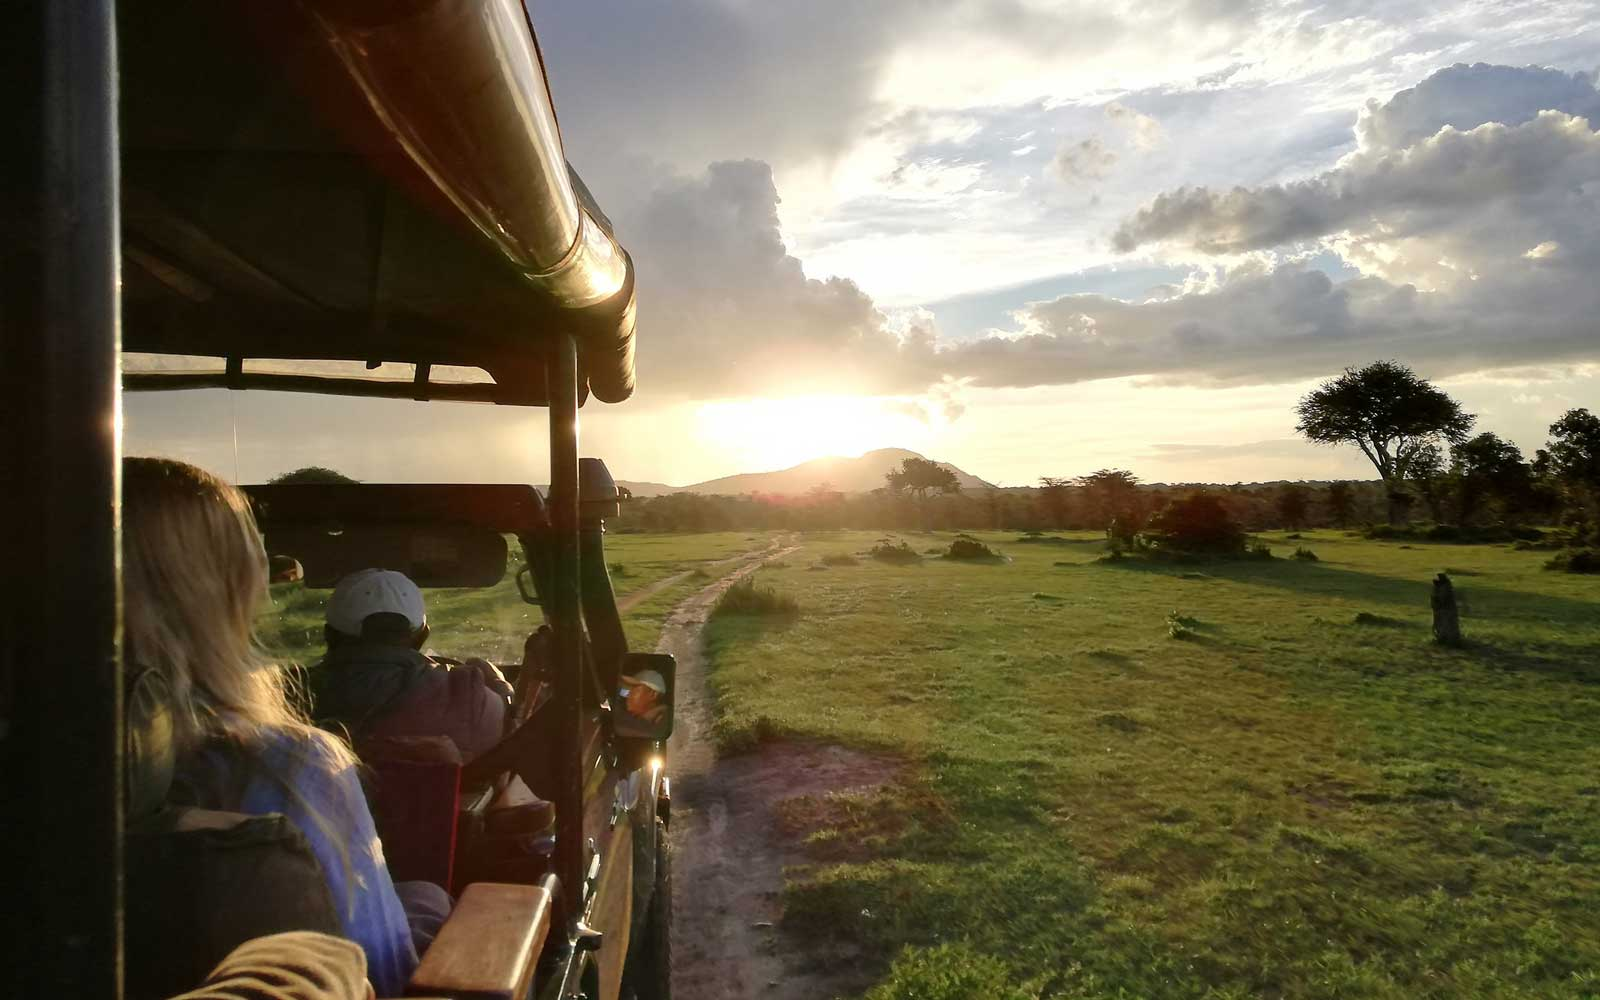 4. Rothschild Safaris